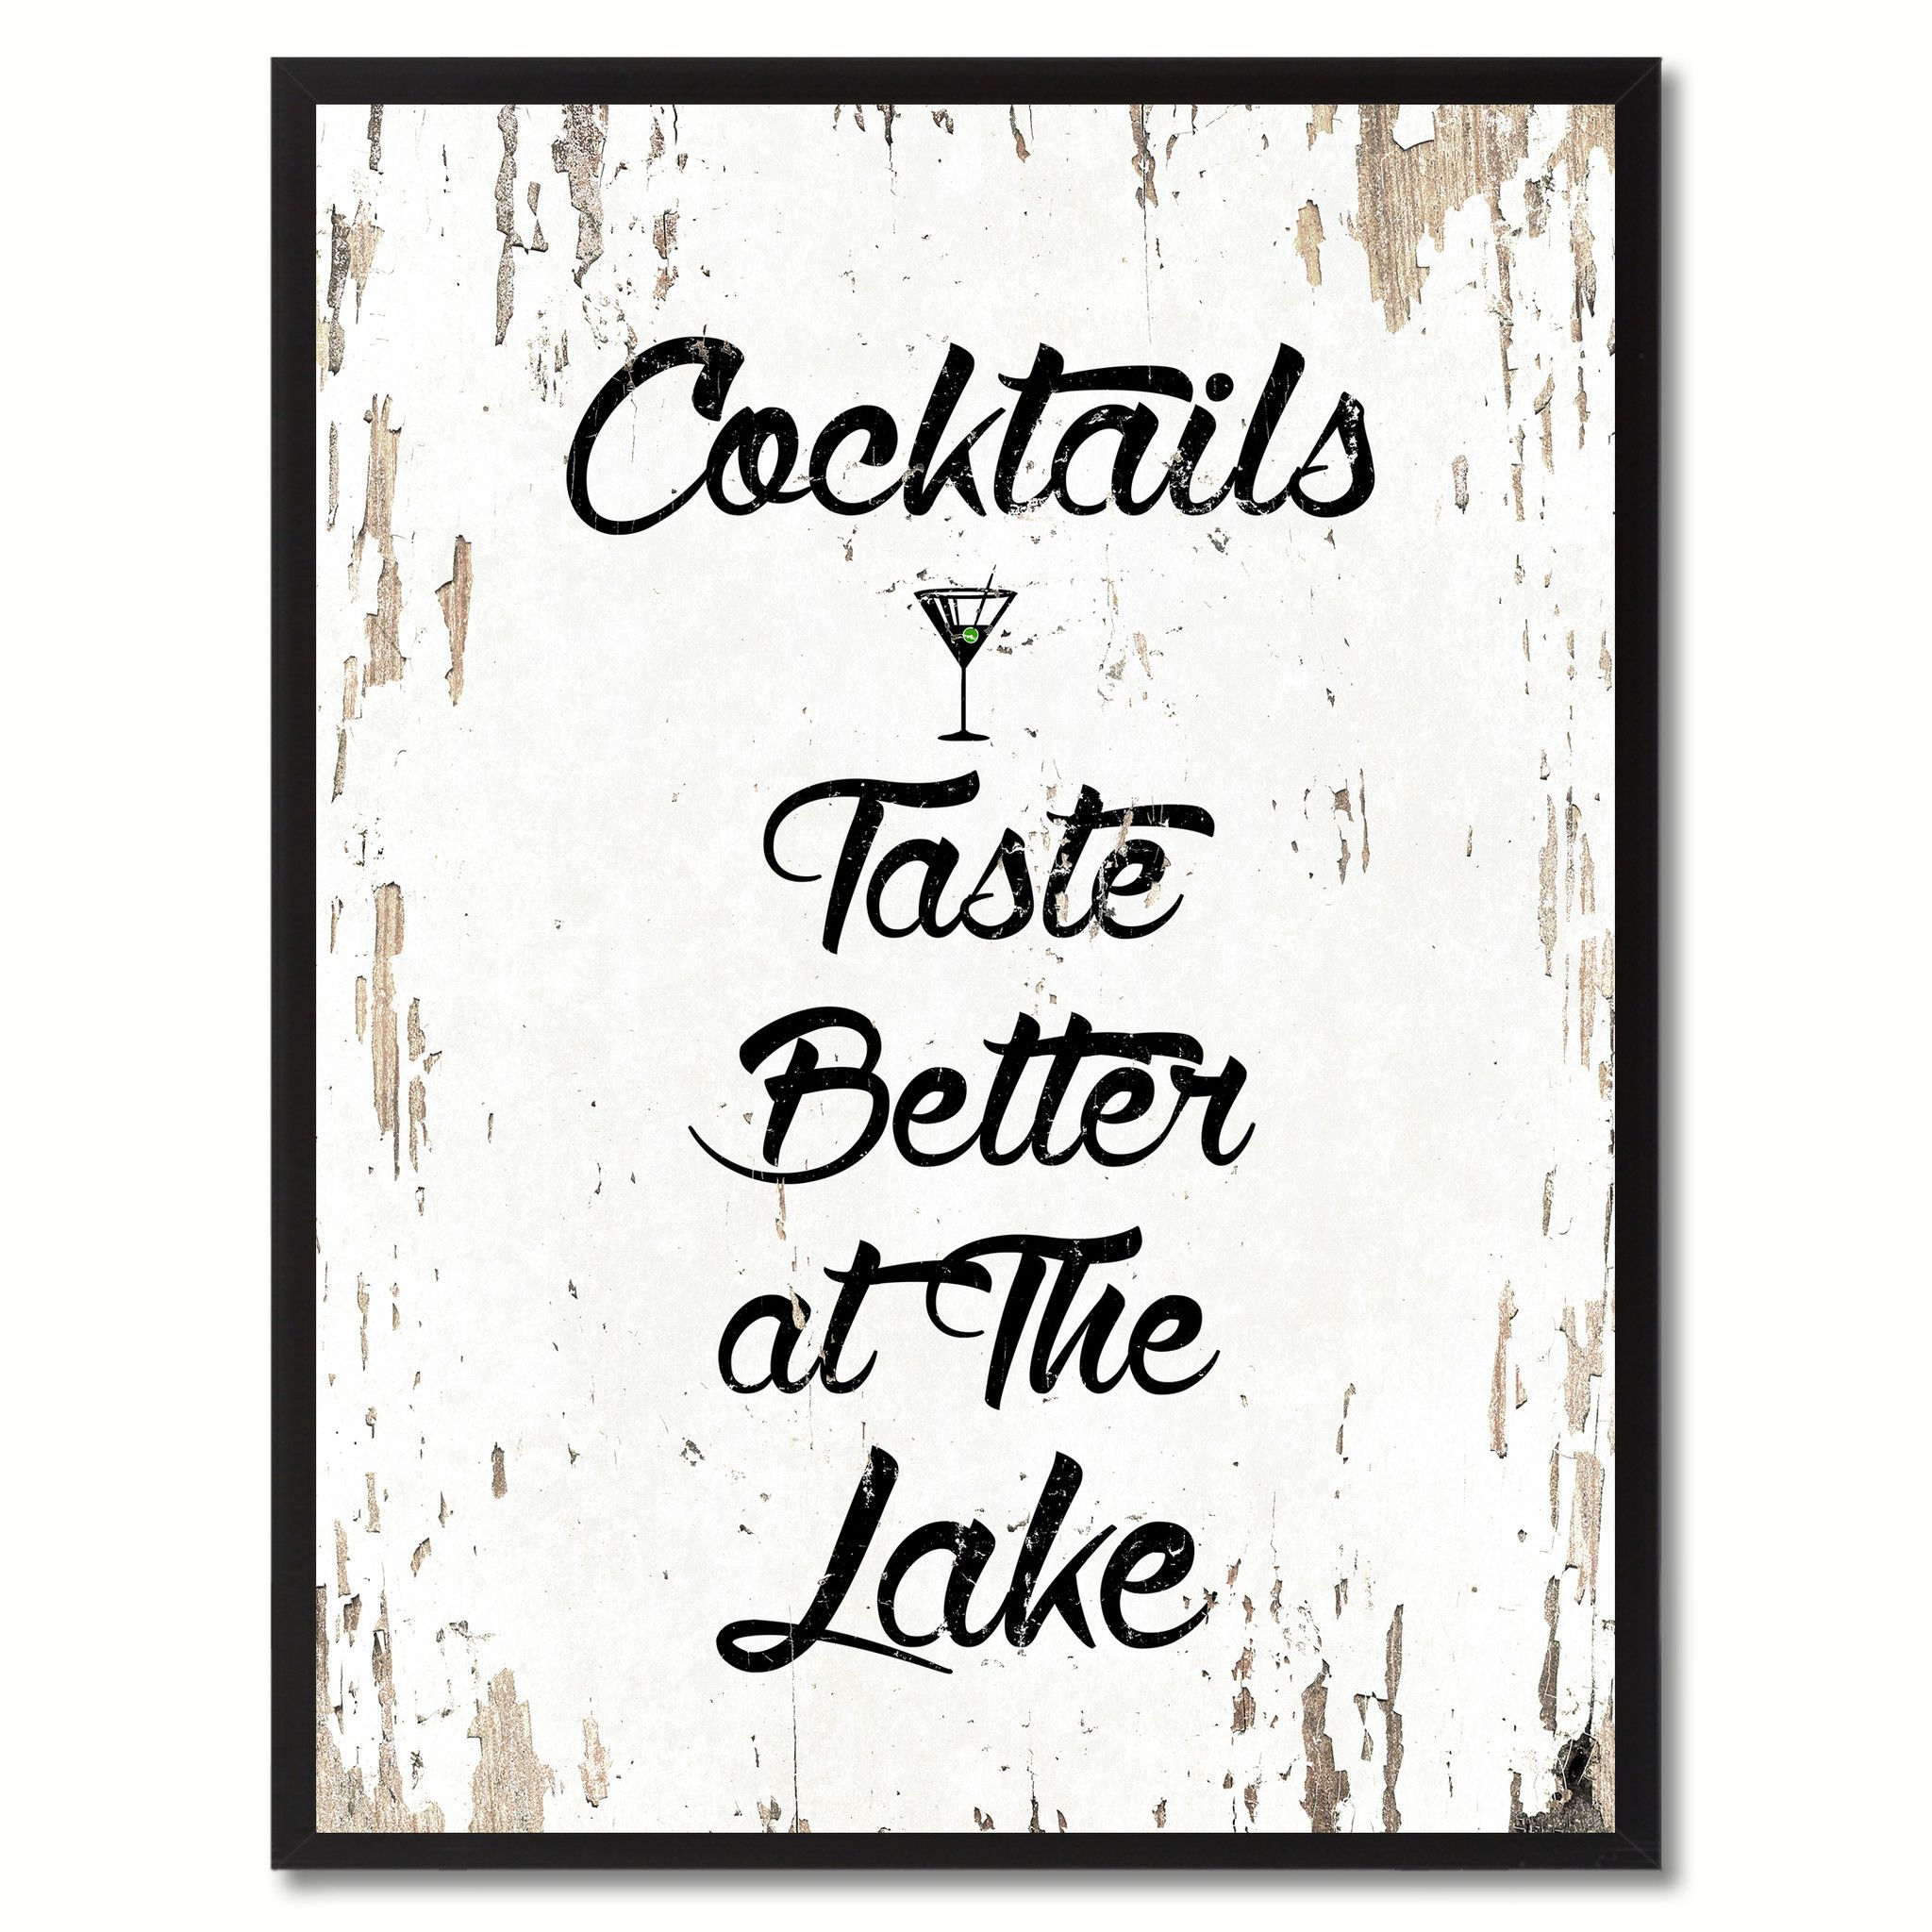 Cocktails Taste Better At The Lake Saying Canvas Print